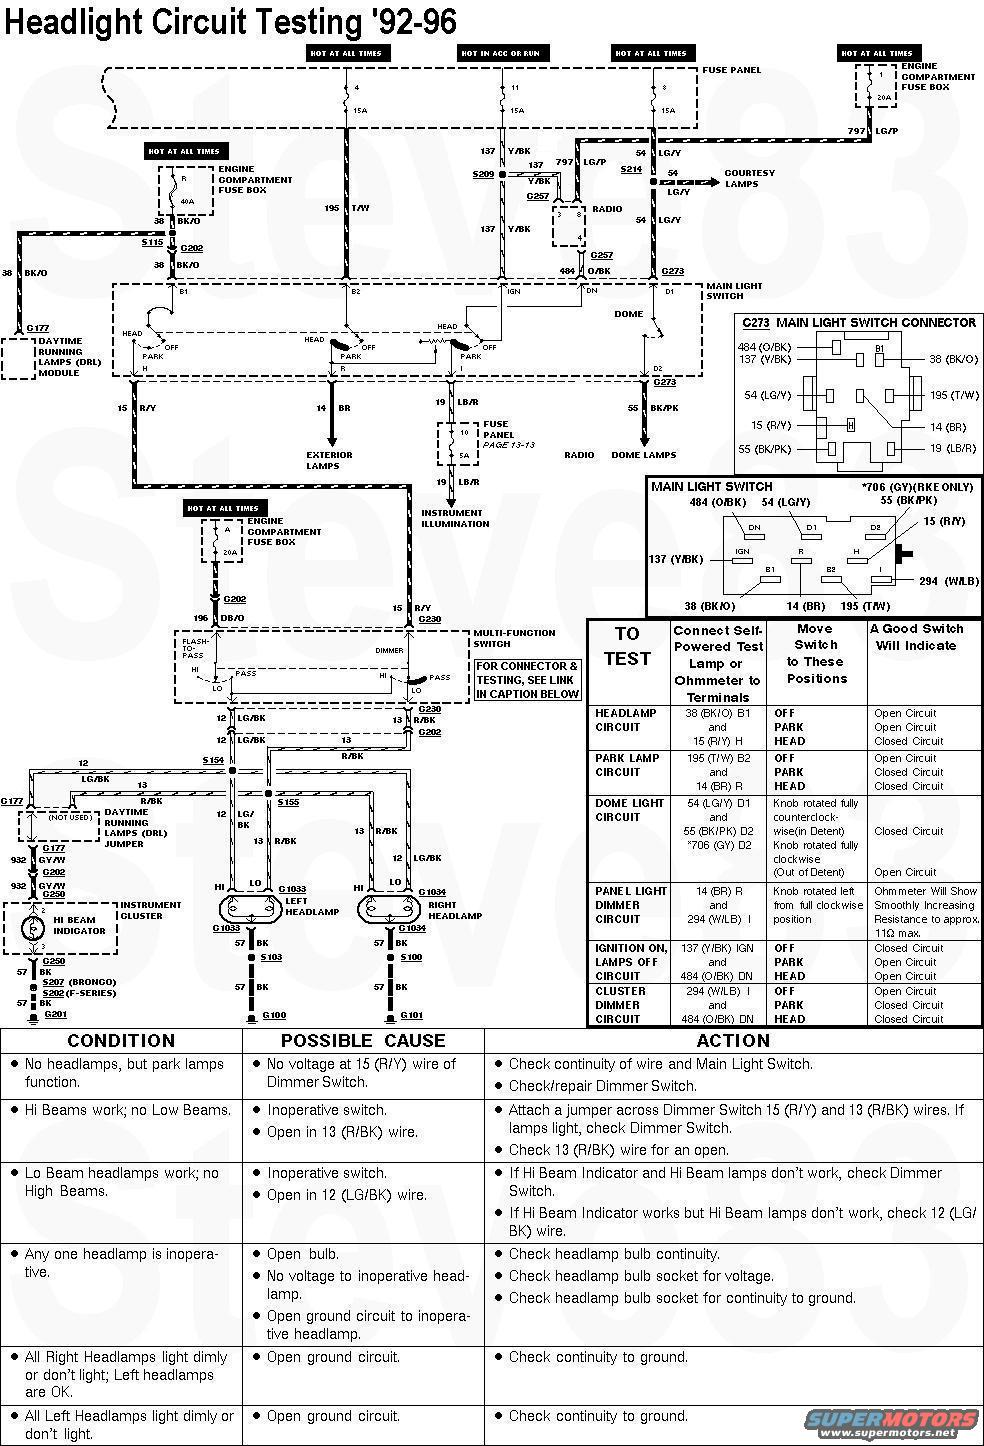 93 ford explorer headlight wiring diagram